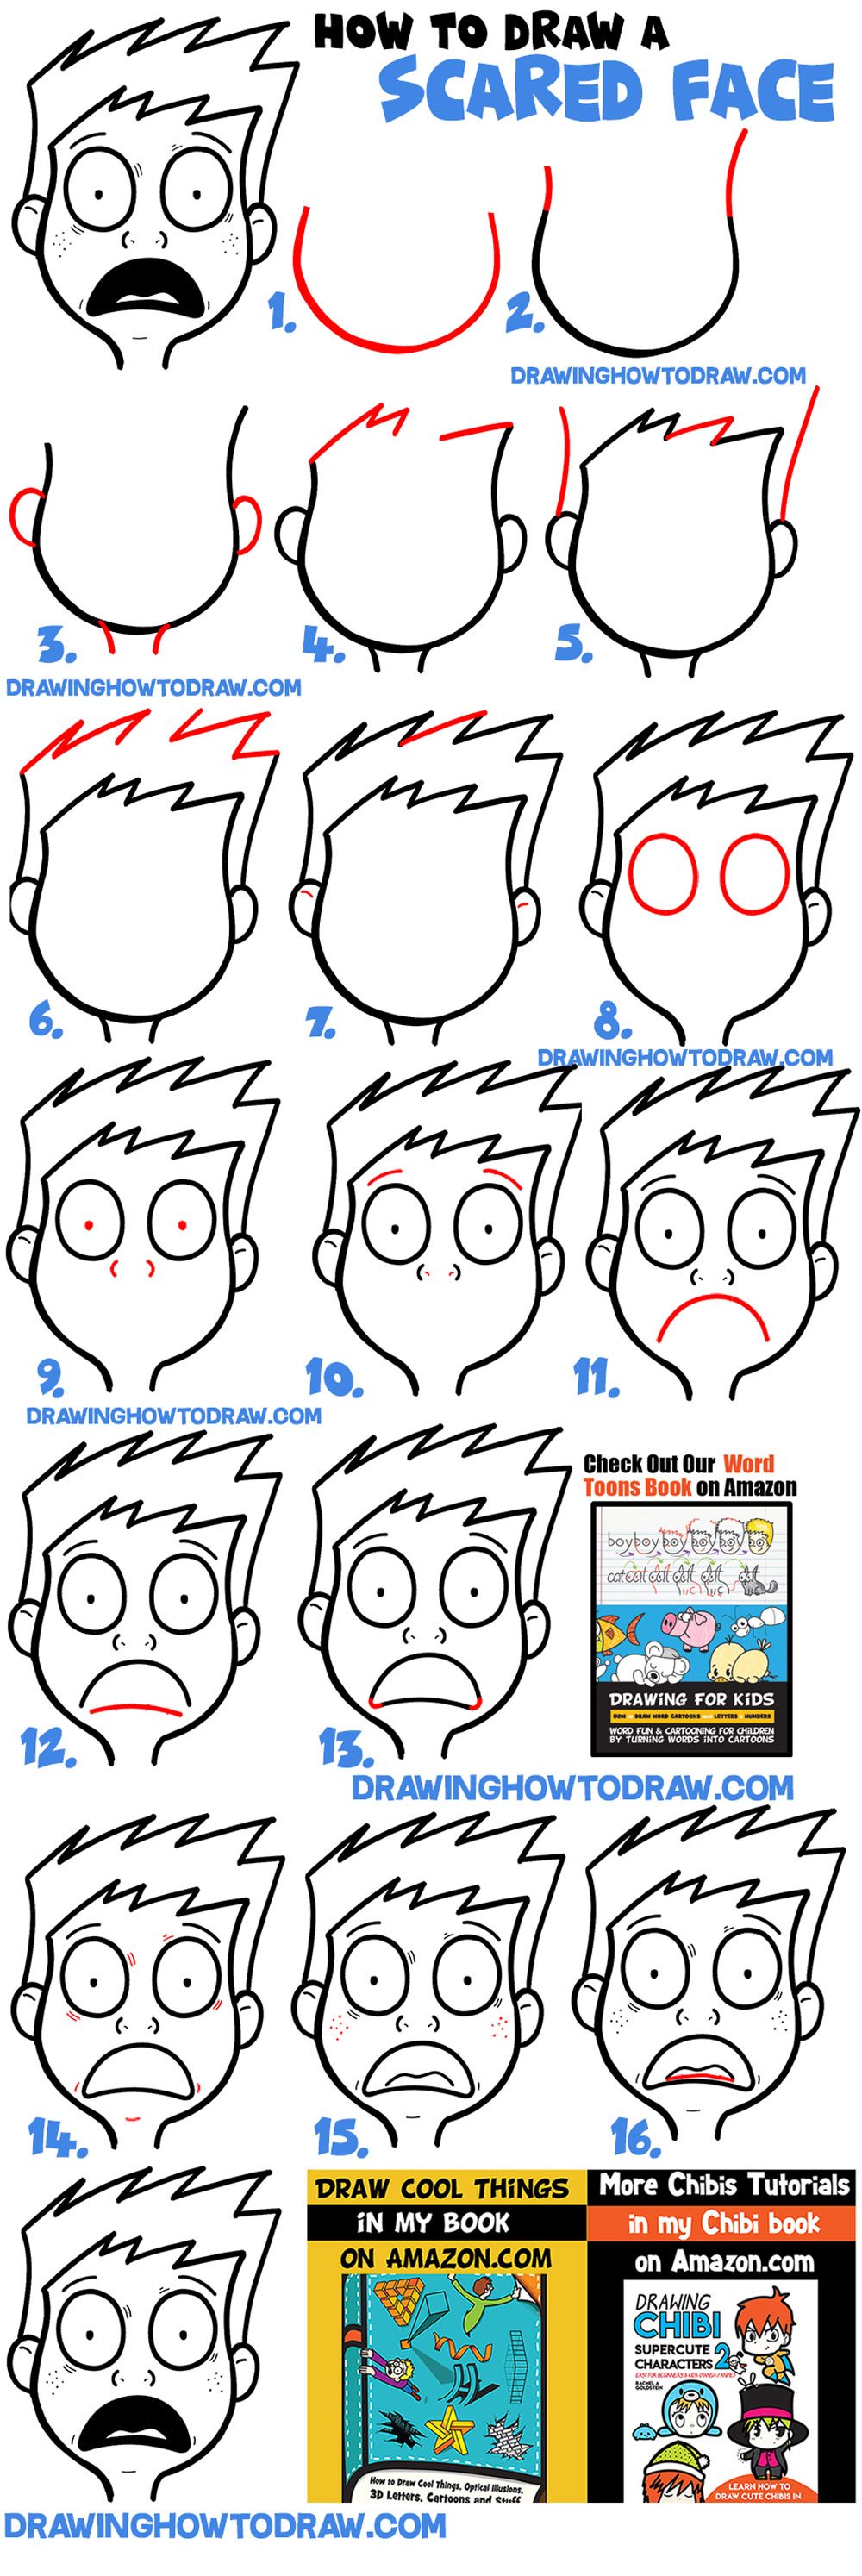 how to draw a cartoon face scared, terrified, petrified, anxious, afraid scared